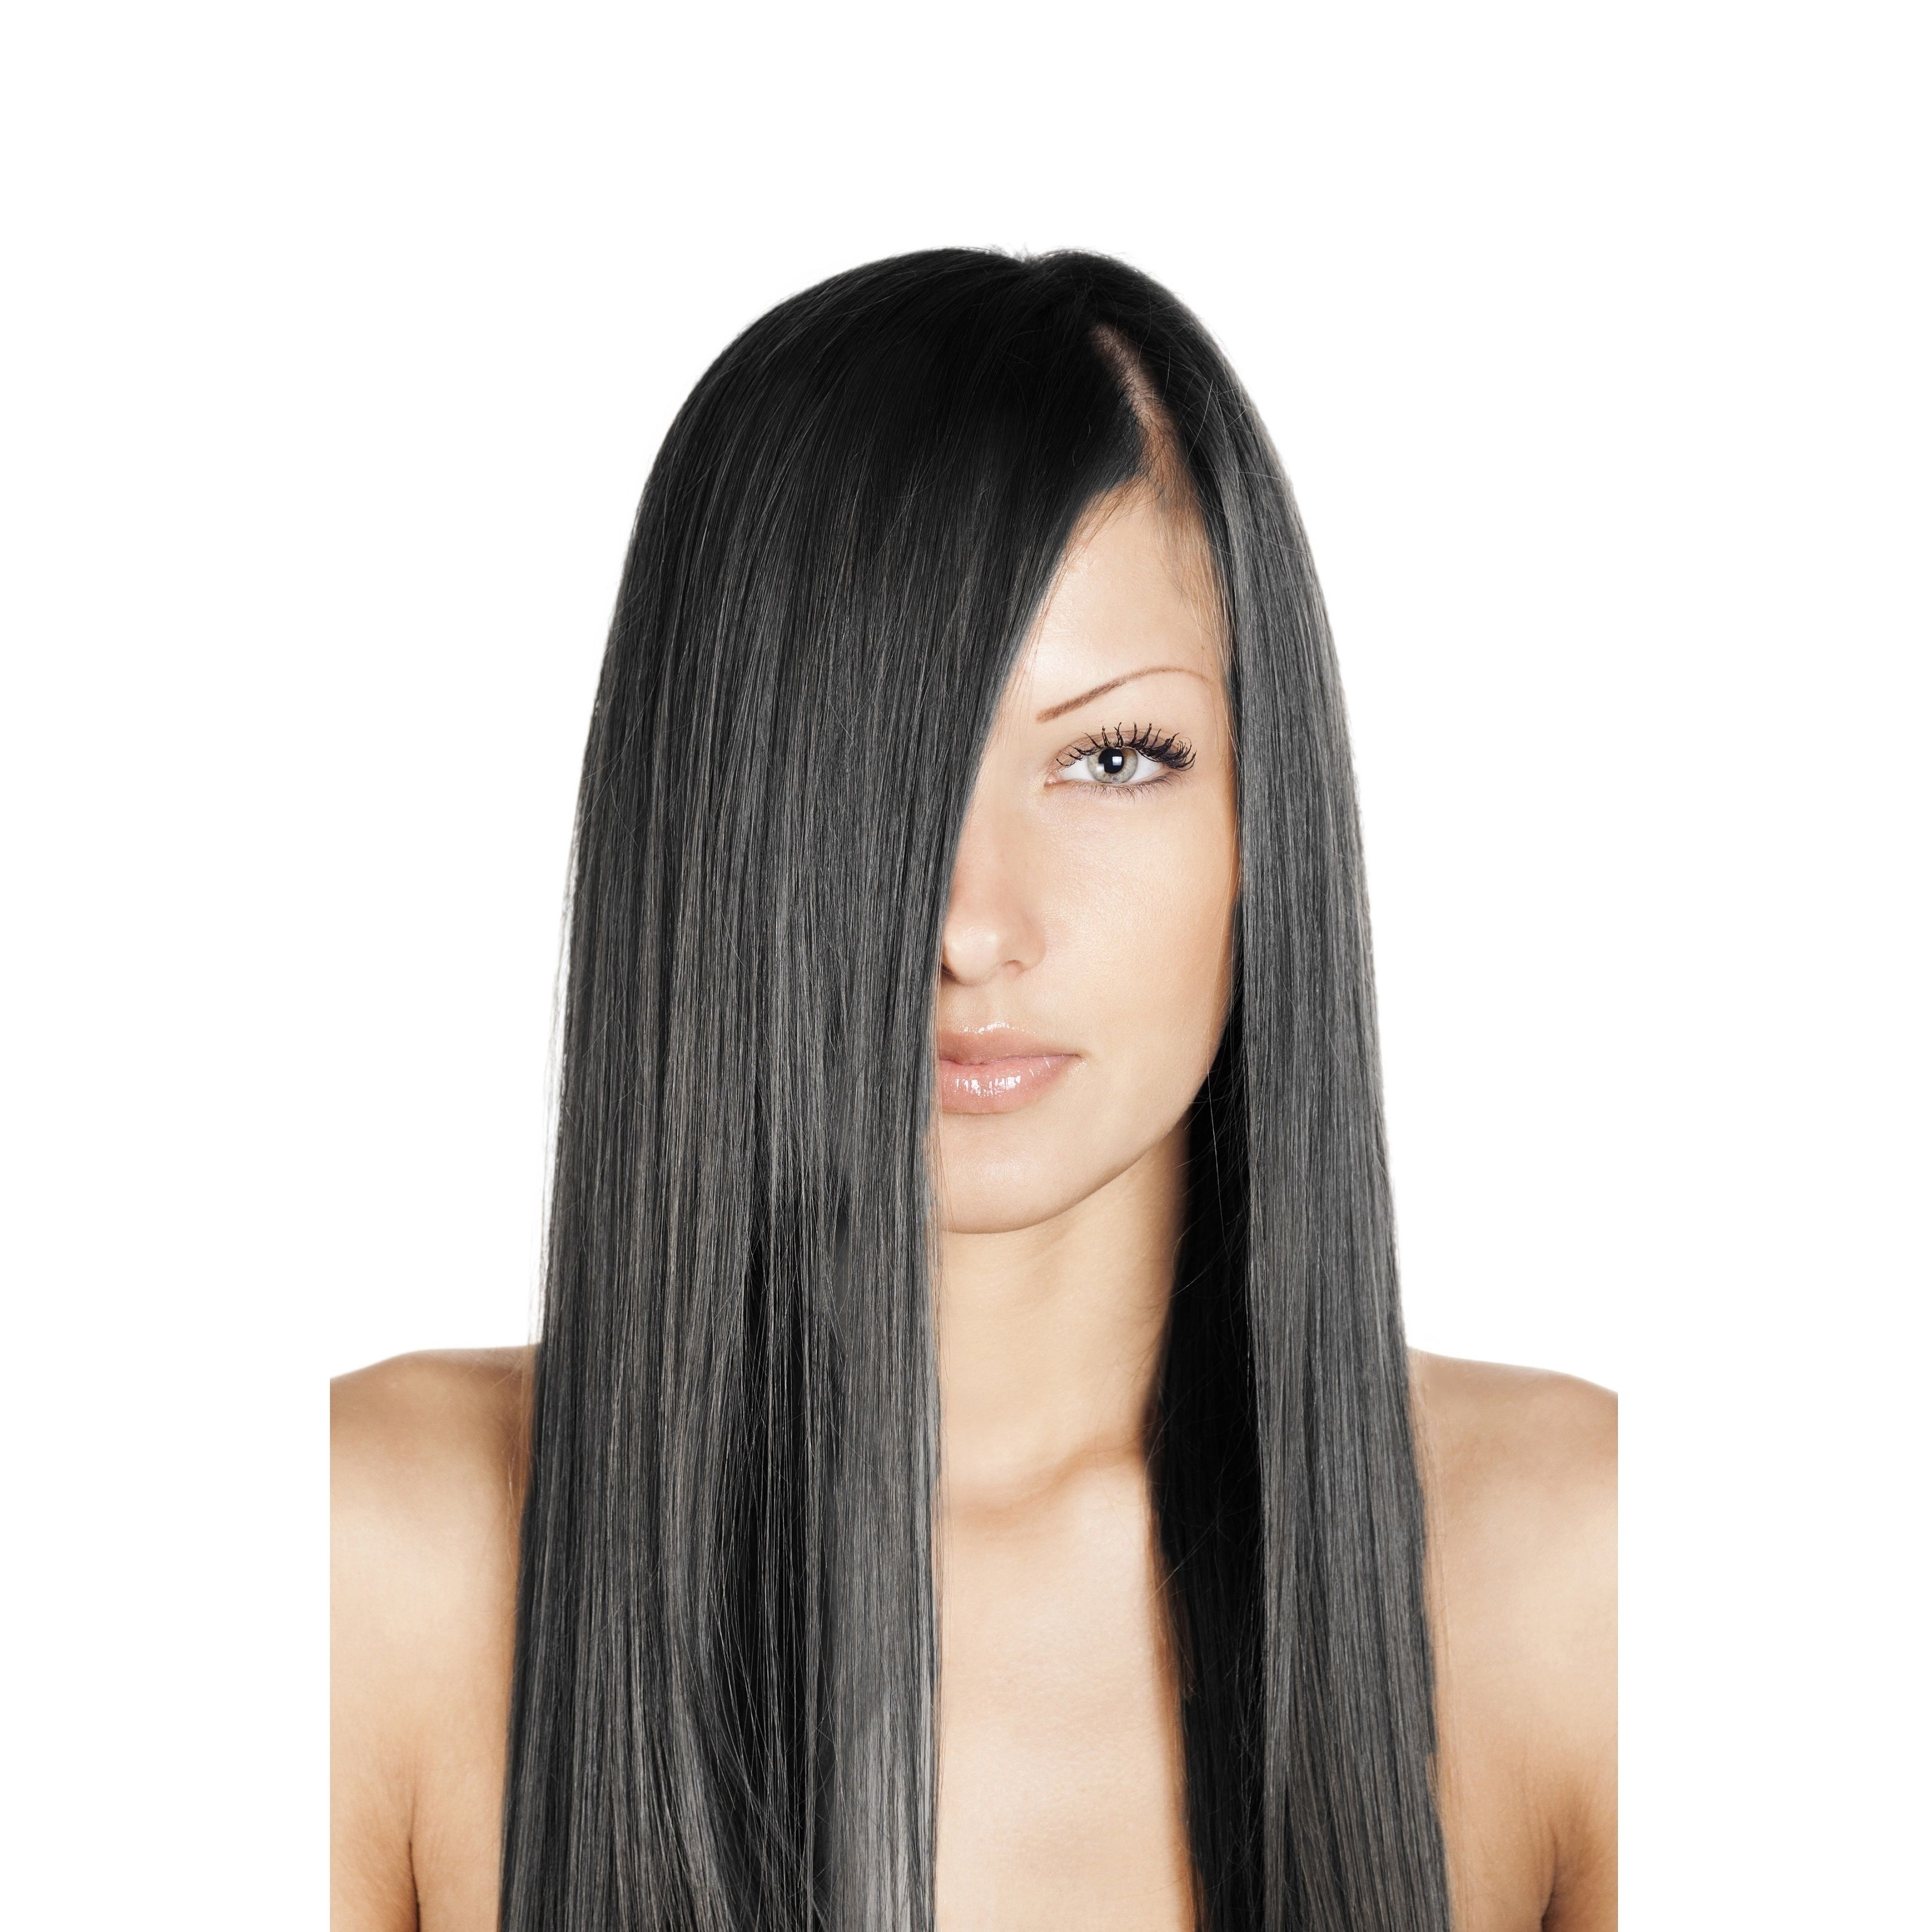 Sono g inch solo straight percent human hair extensions